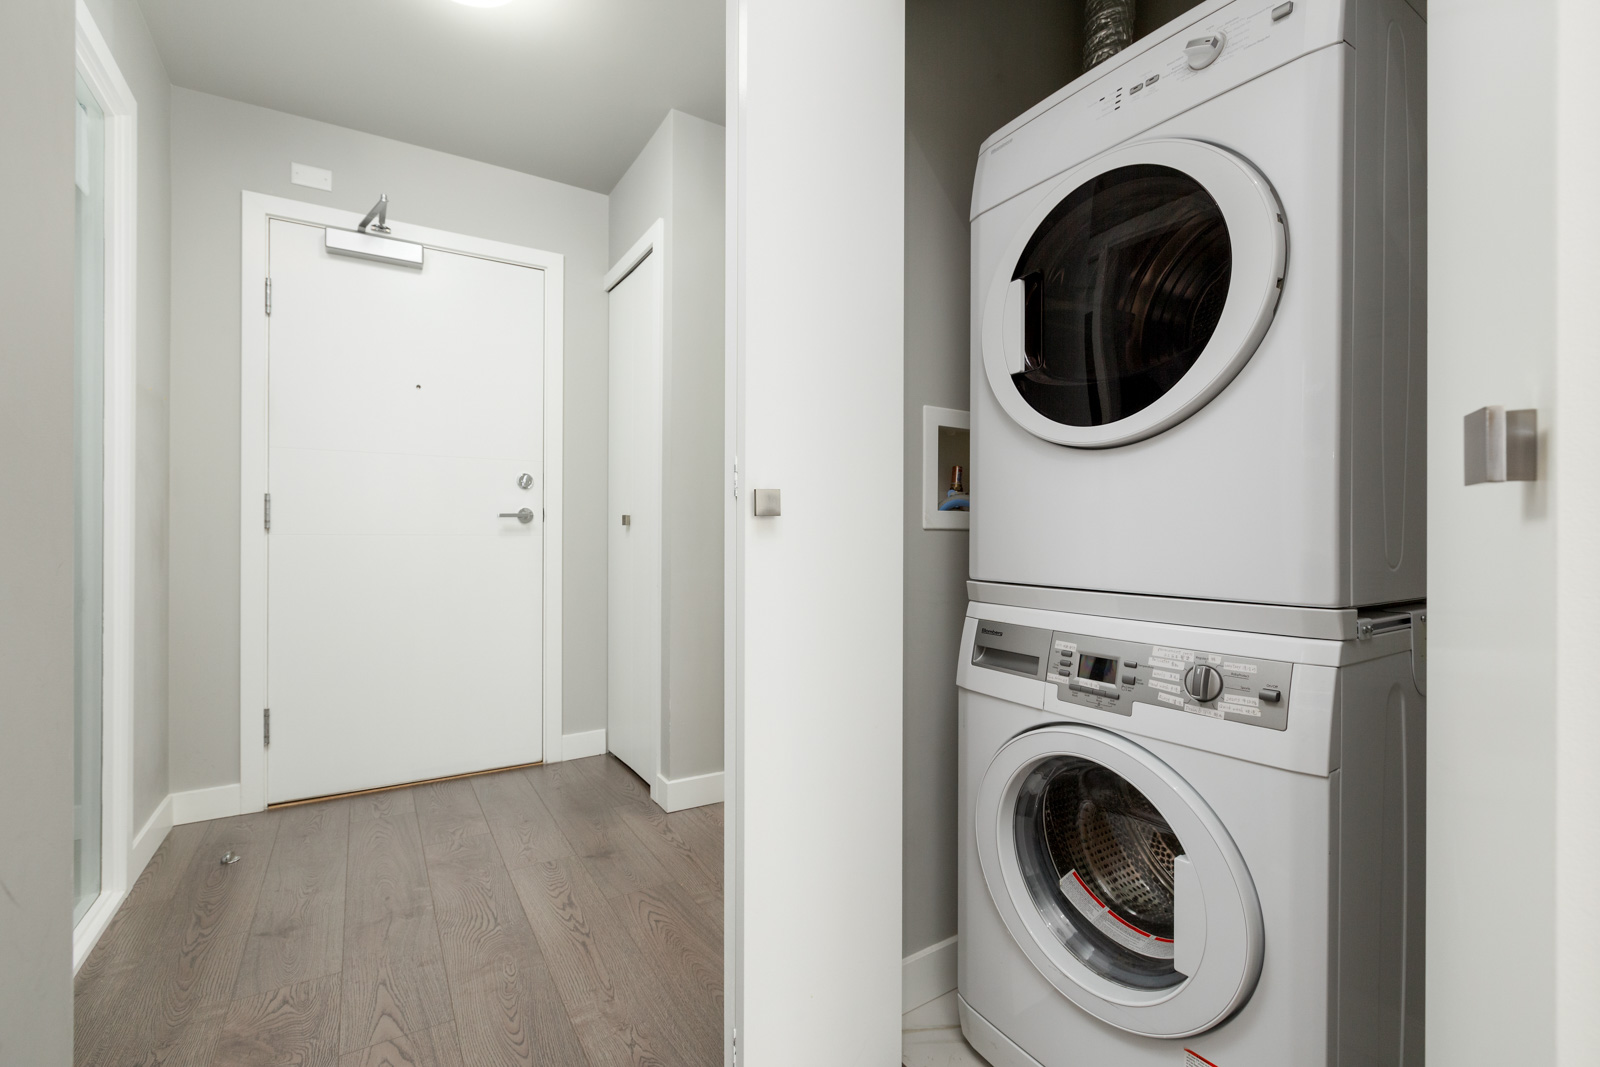 In suite washer and dryer rental unit in Richmond, Vancouver, British Columbia